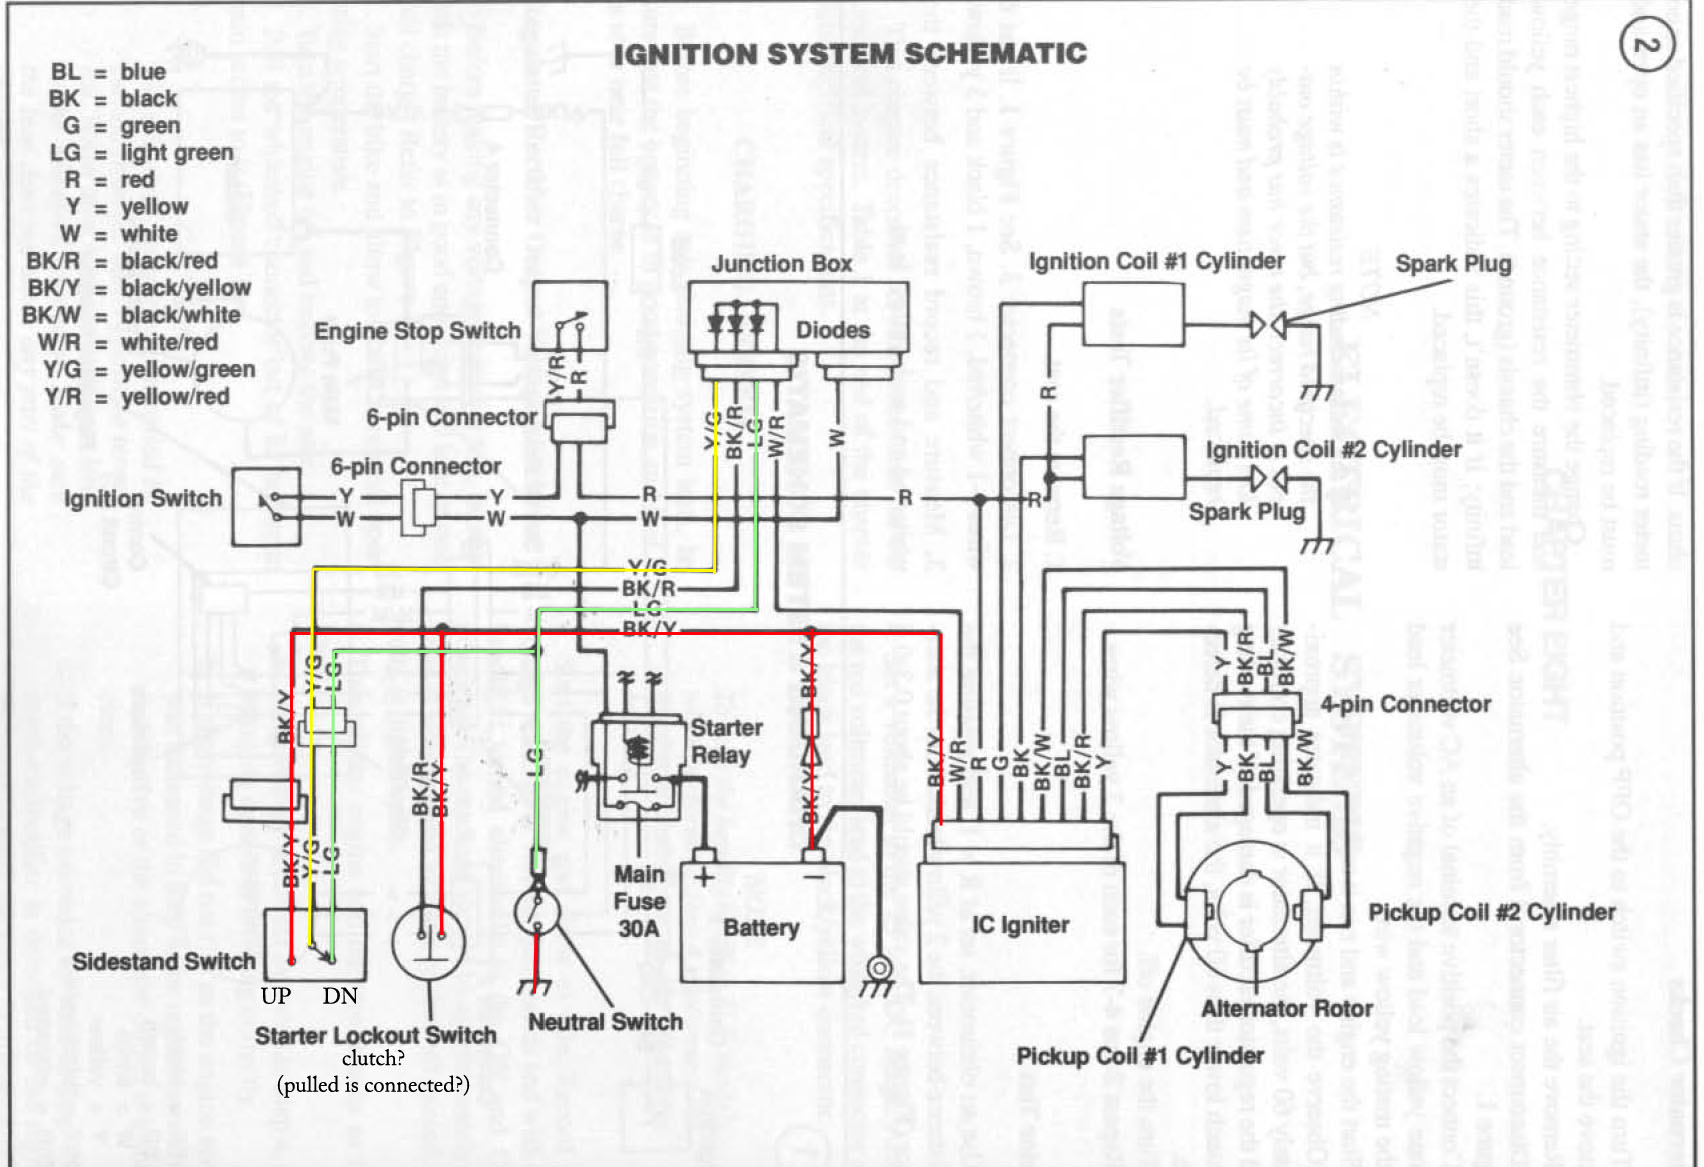 ... Kawasaki_EX_500_ignition kawasaki klf 300 wiring diagram kawasaki mule  engine diagram ninja 250r wiring diagram at cita